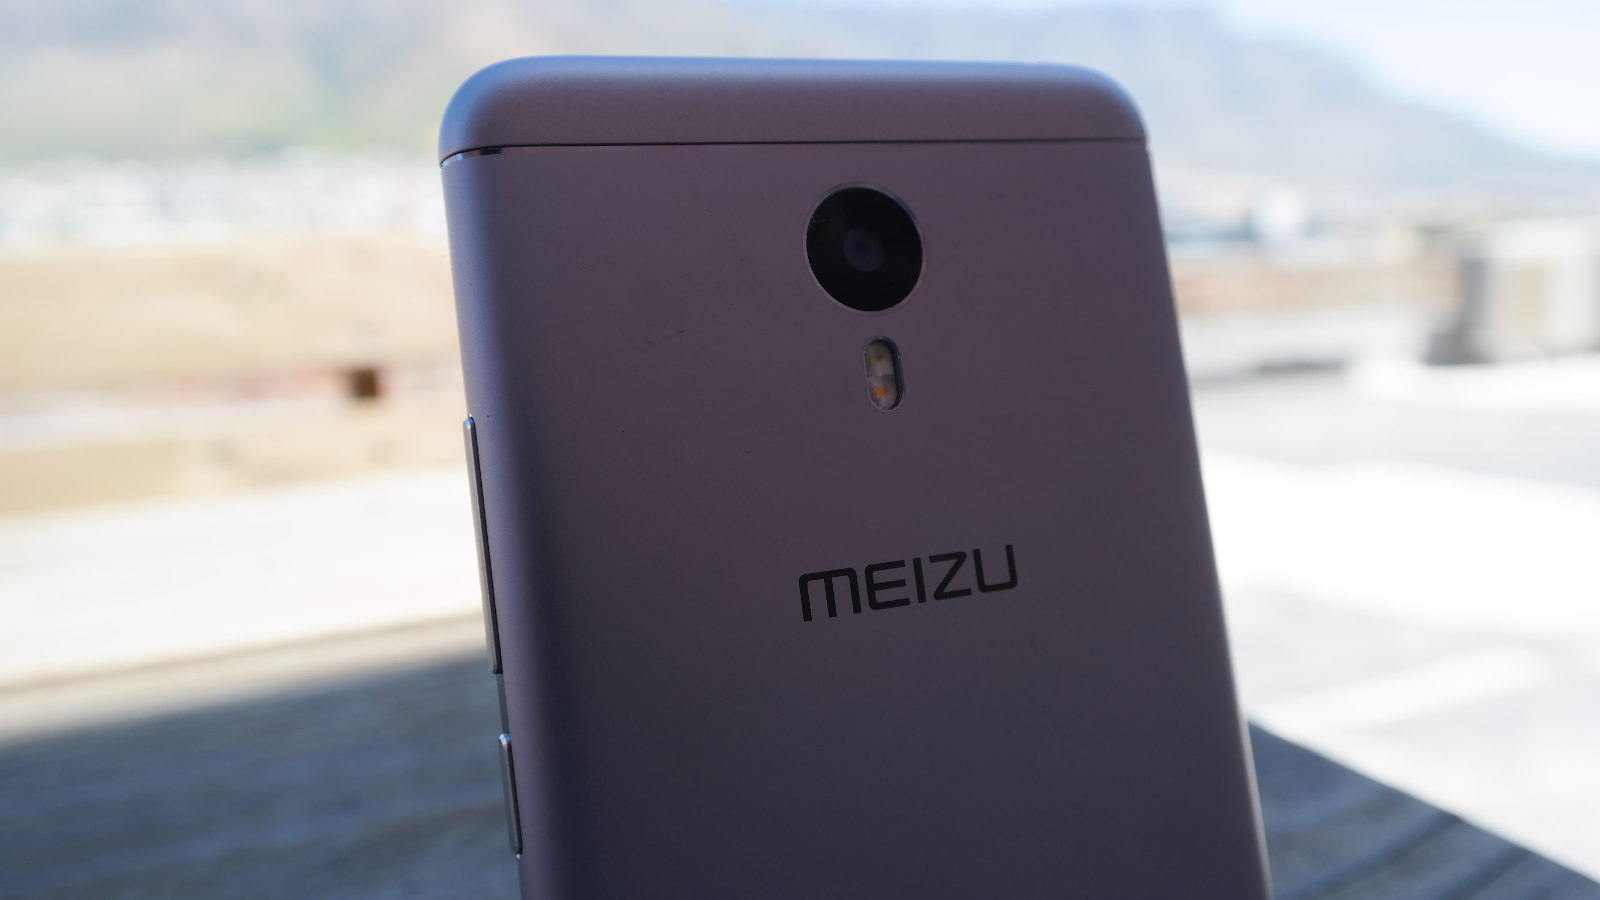 Meizu M3 Note review: is this the budget phone for m3? - Gearburn